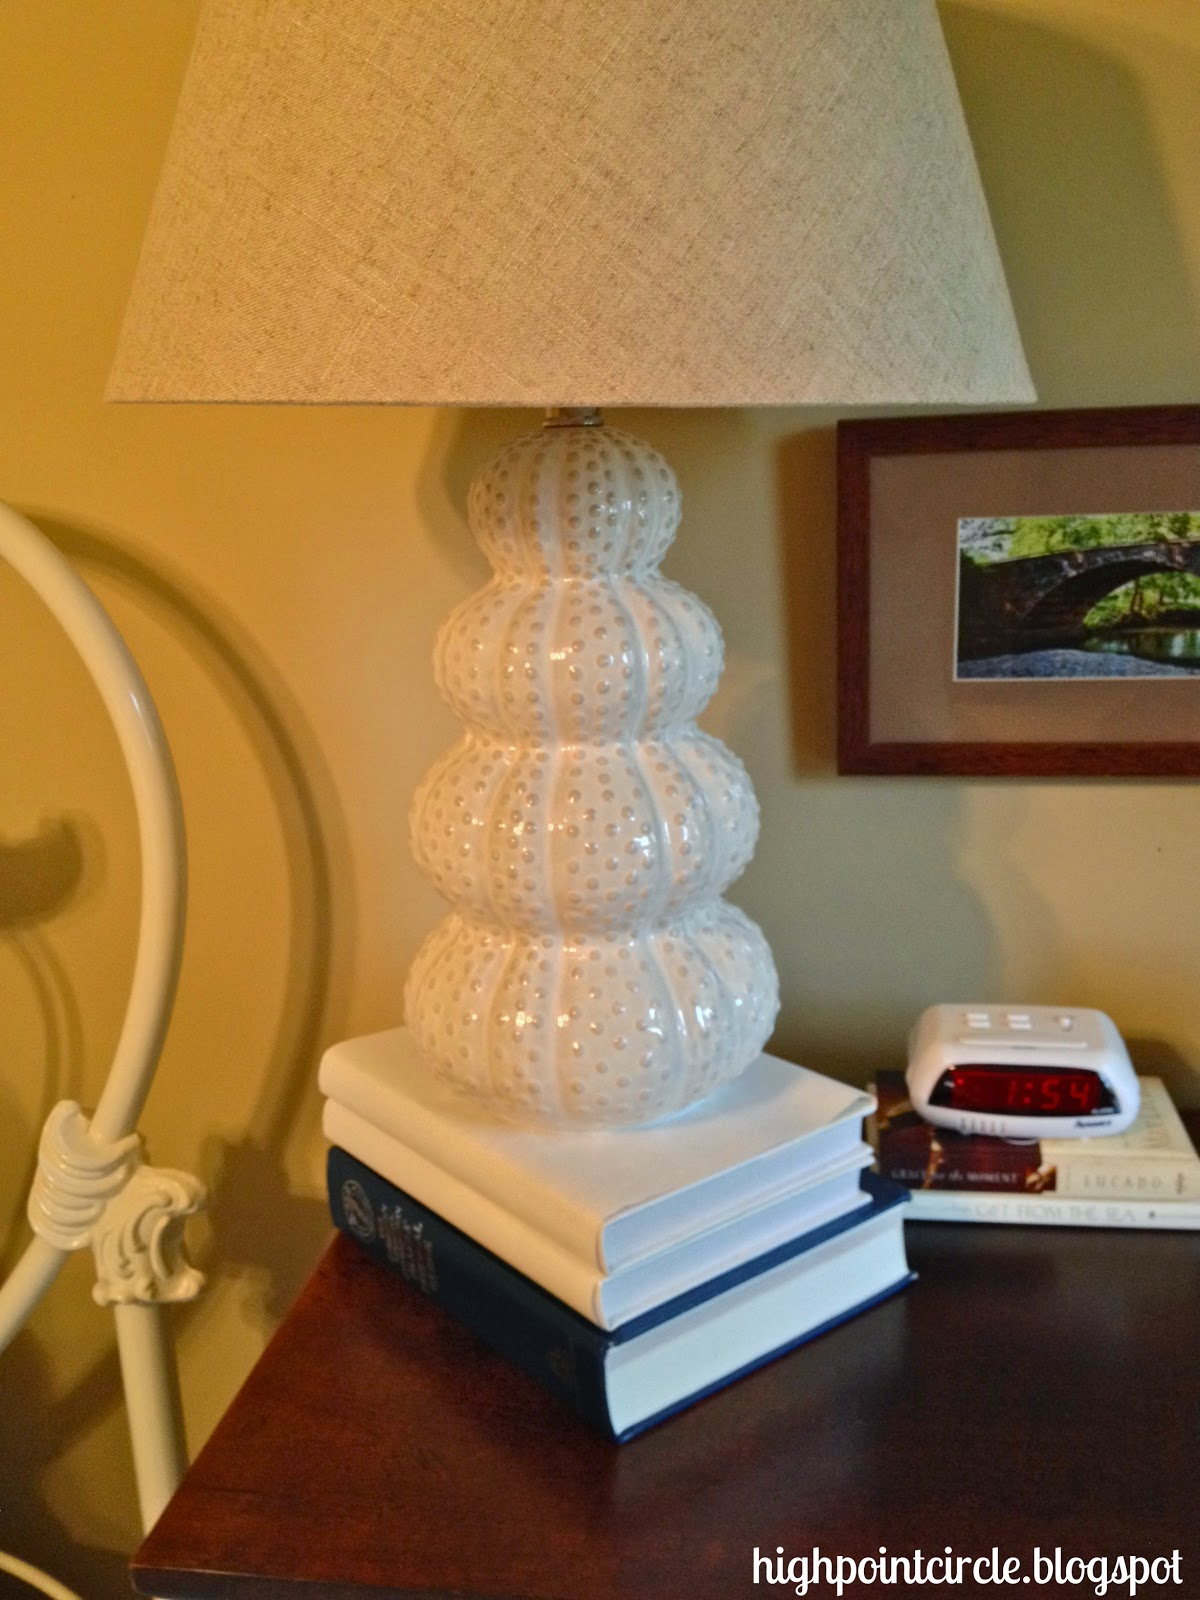 Admirable broyhill lamps with table for living room or bedroom furniture interior